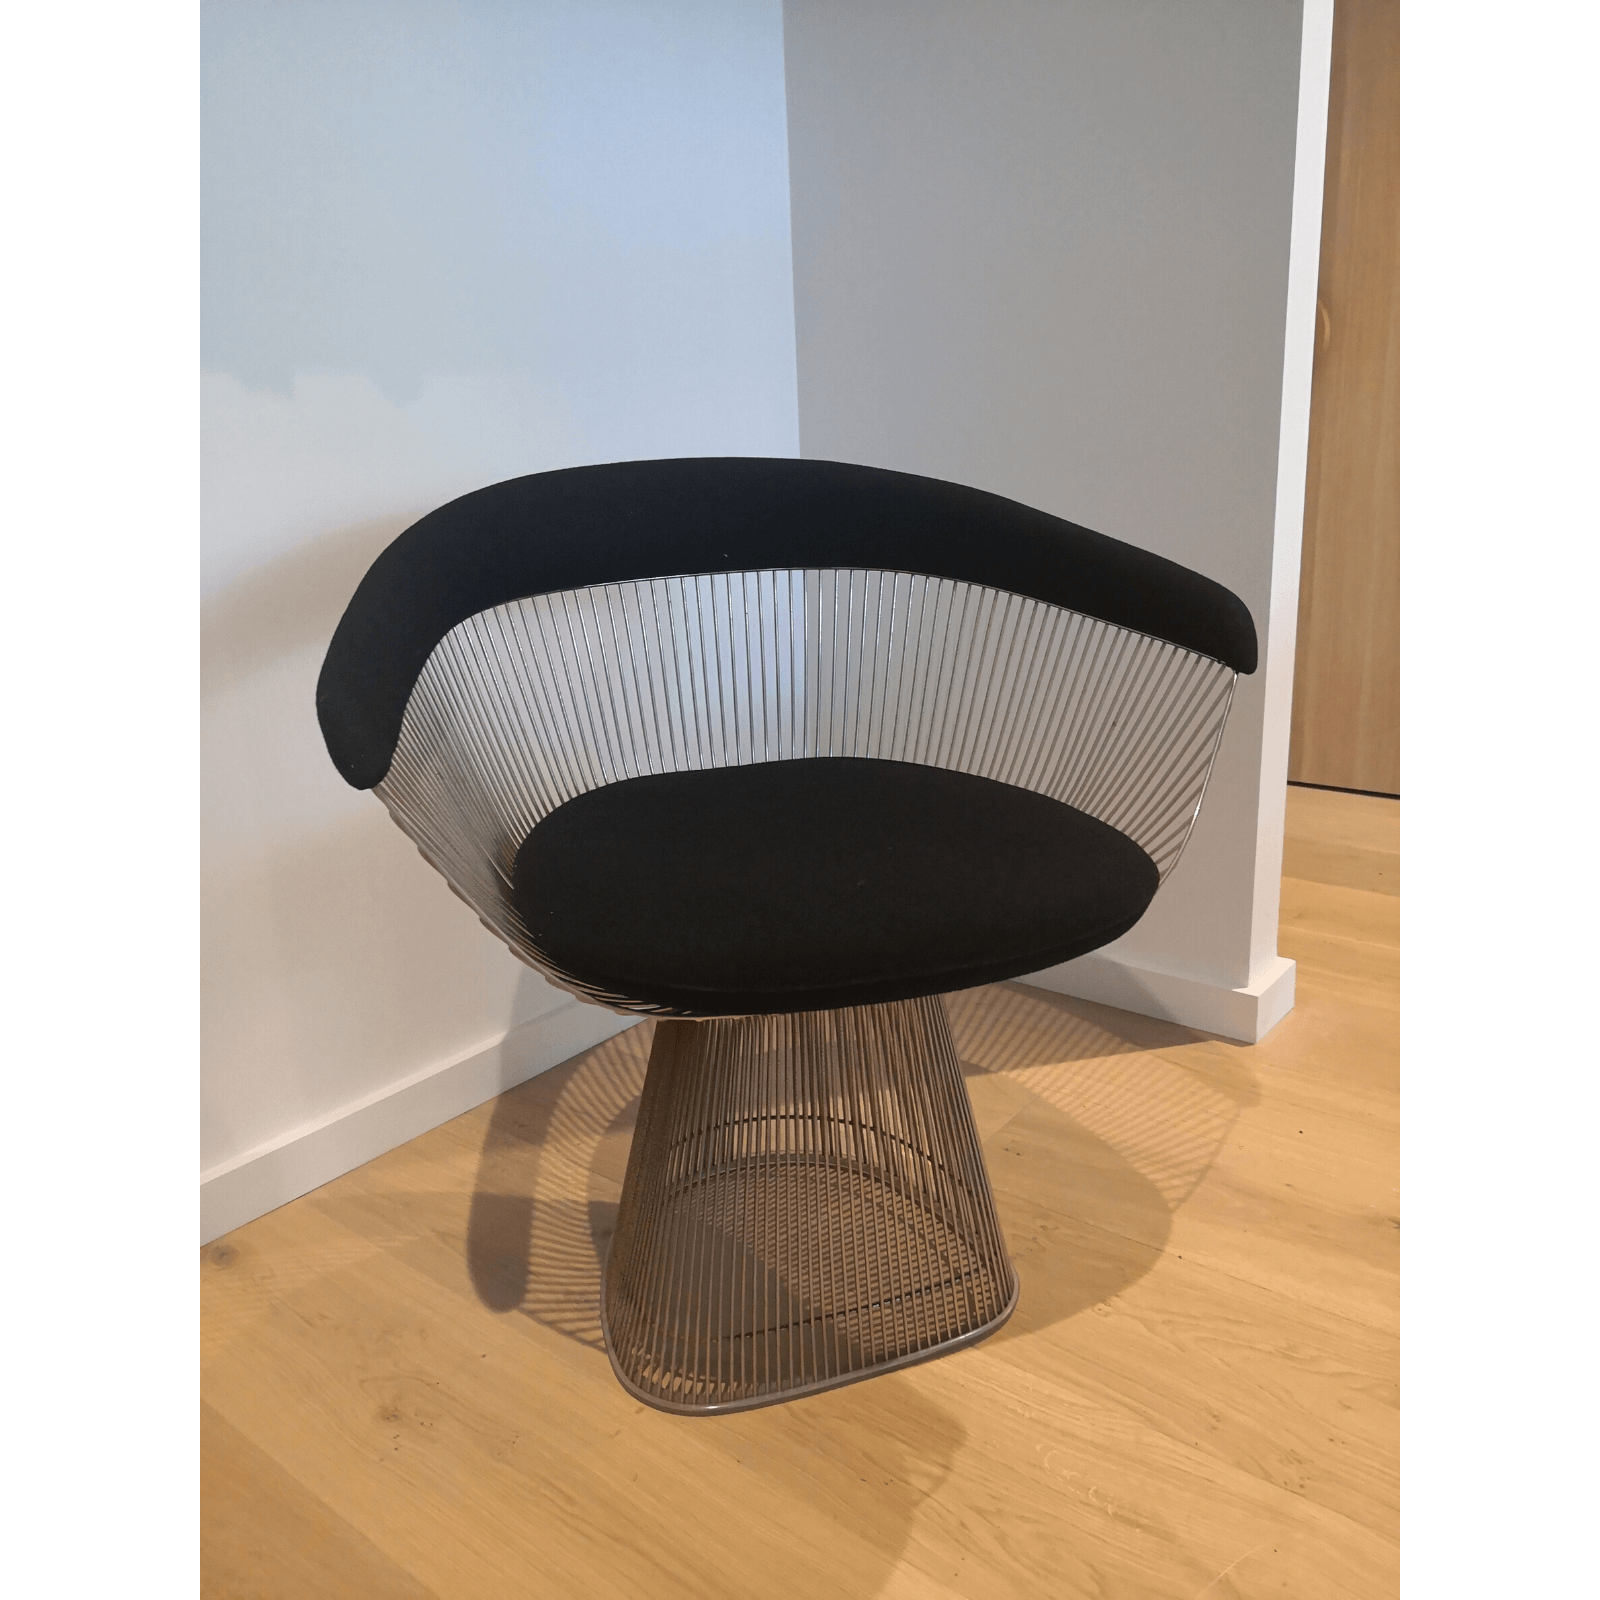 Two Design Lovers Platner Dining Chair & Table 2